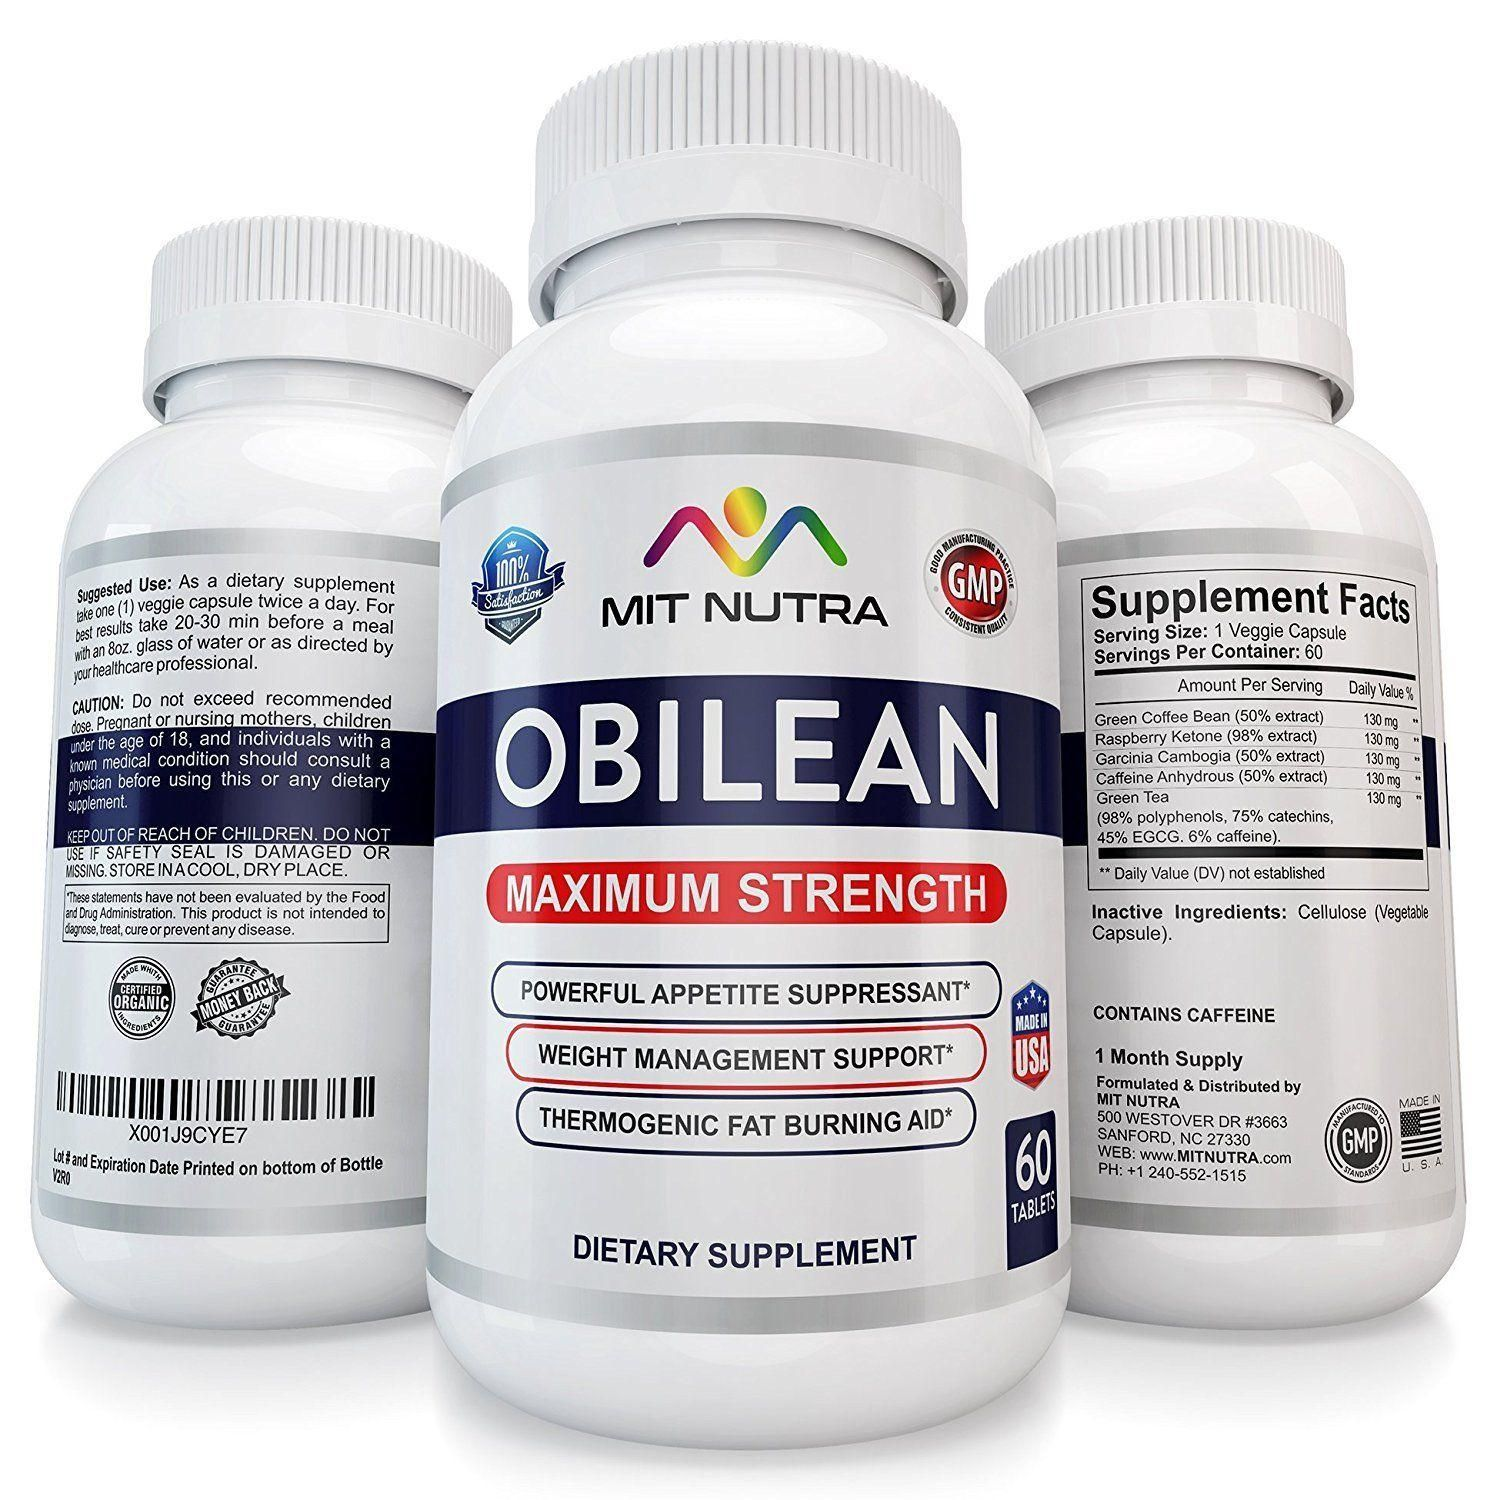 2 Obilean Extreme Energy Like Adipex 37 5 Rapid Weight Loss Diet Pills That Work Our Products Best Diet Pills Diet Pills That Work Diet